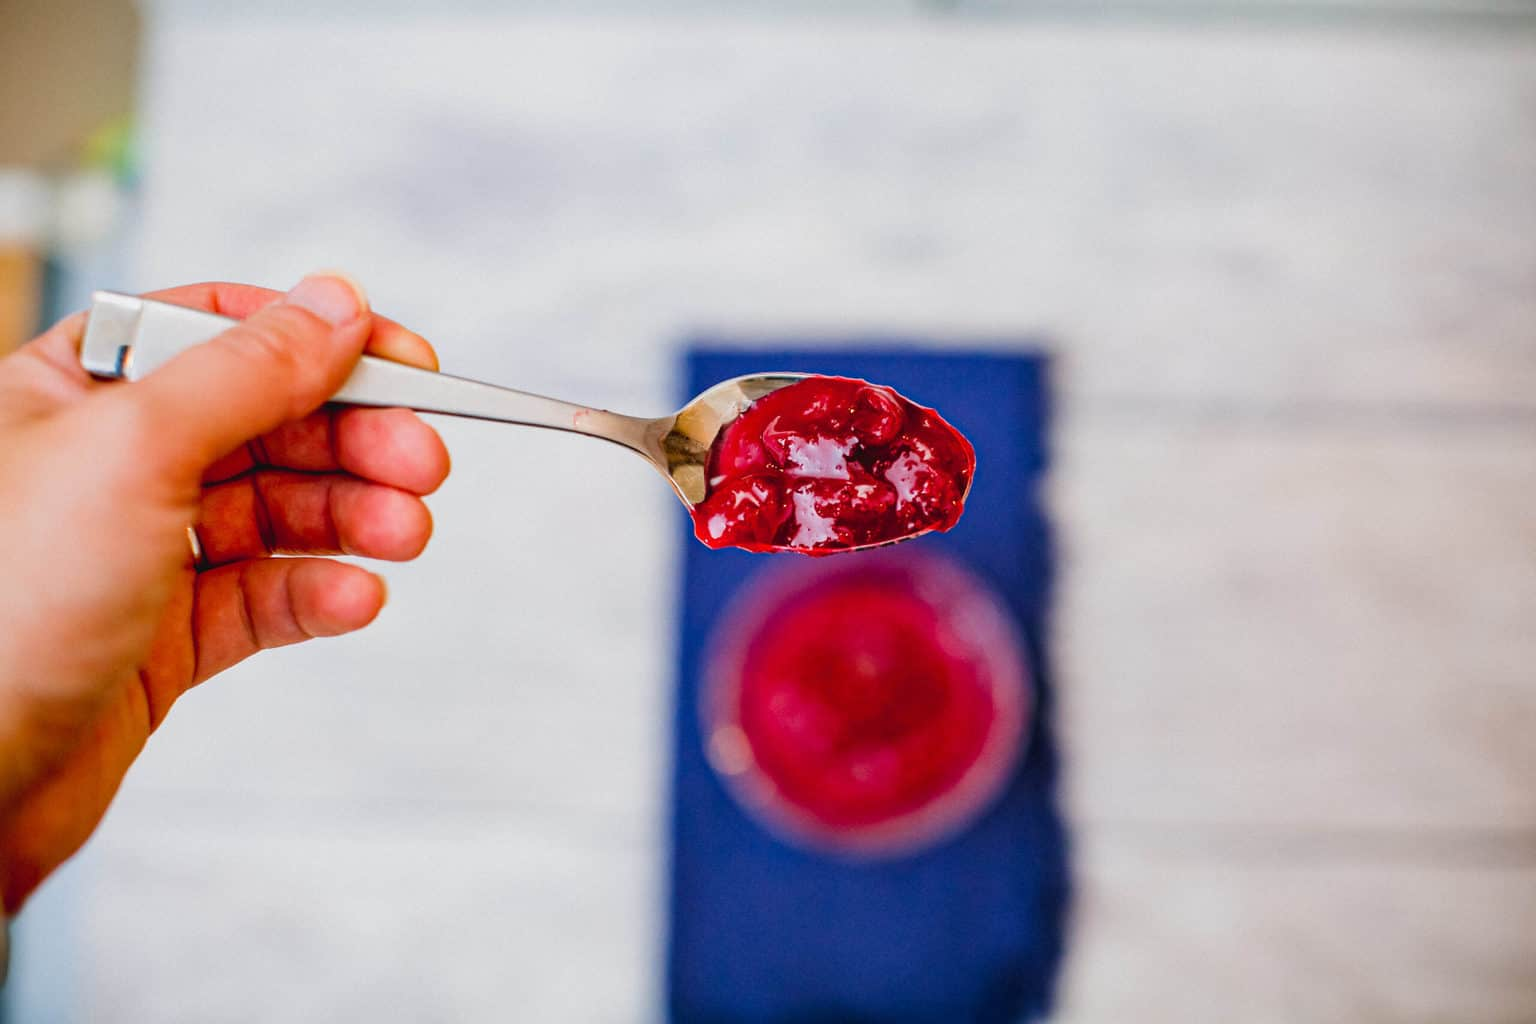 Cranberry sauce on a spoon